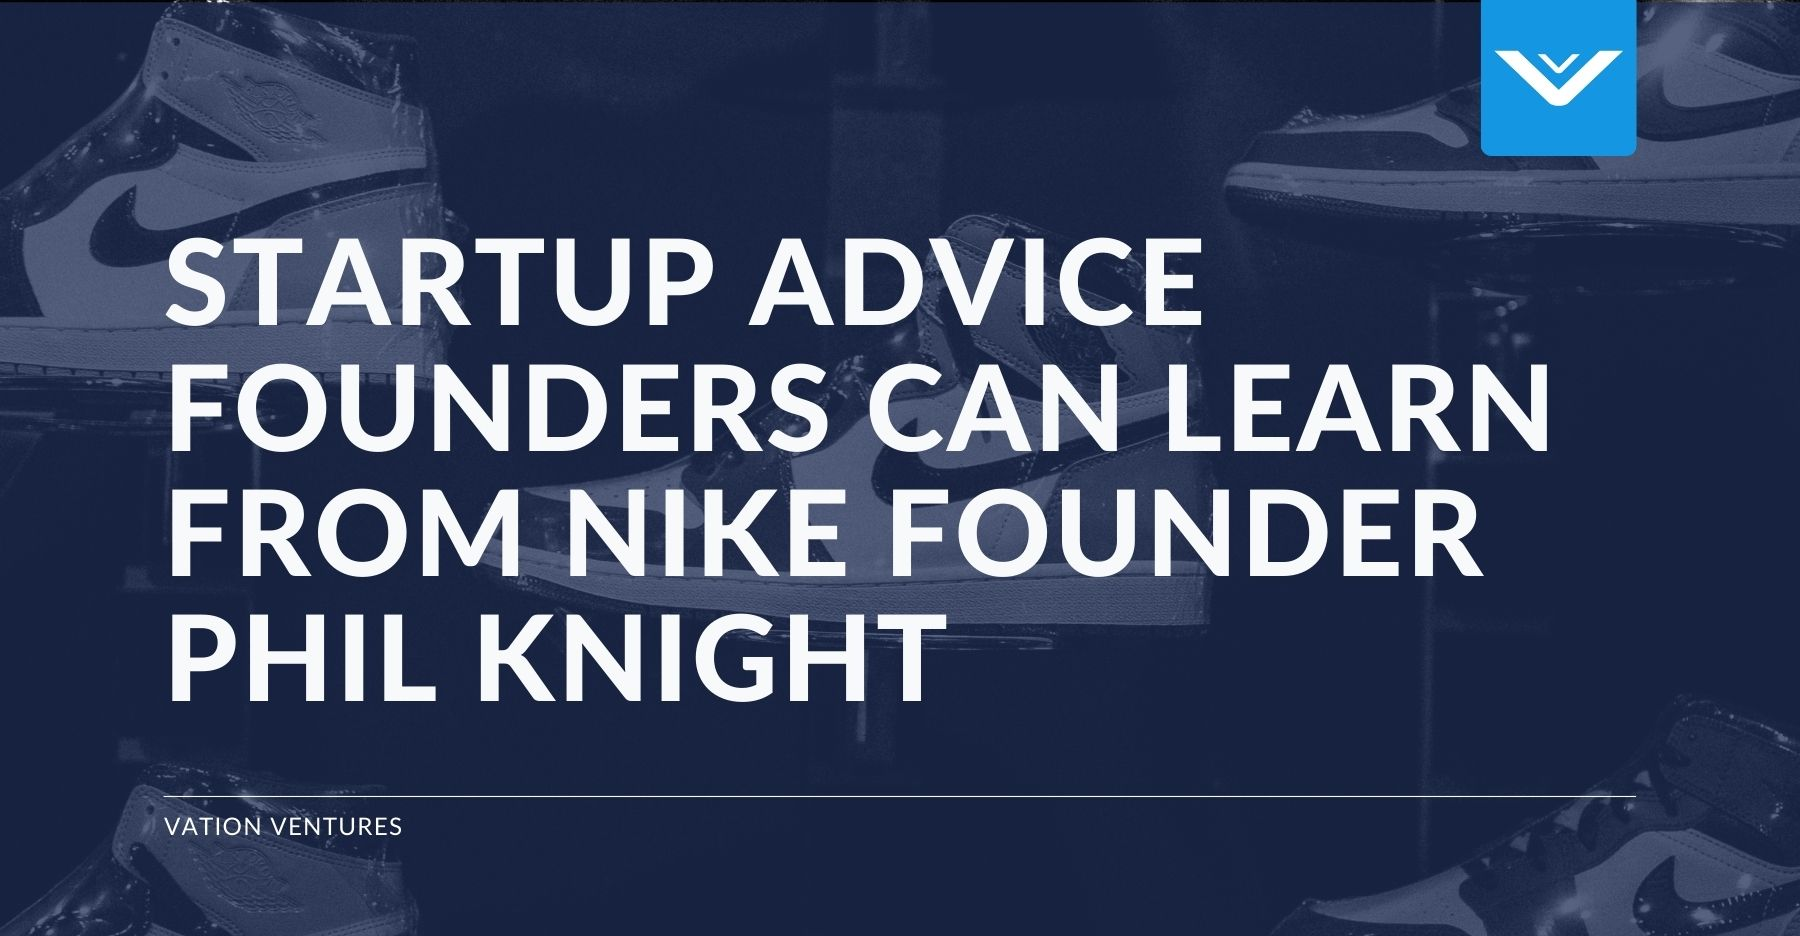 8 Pieces of Startup Advice Founders Can Learn From Nike Founder Phil Knight